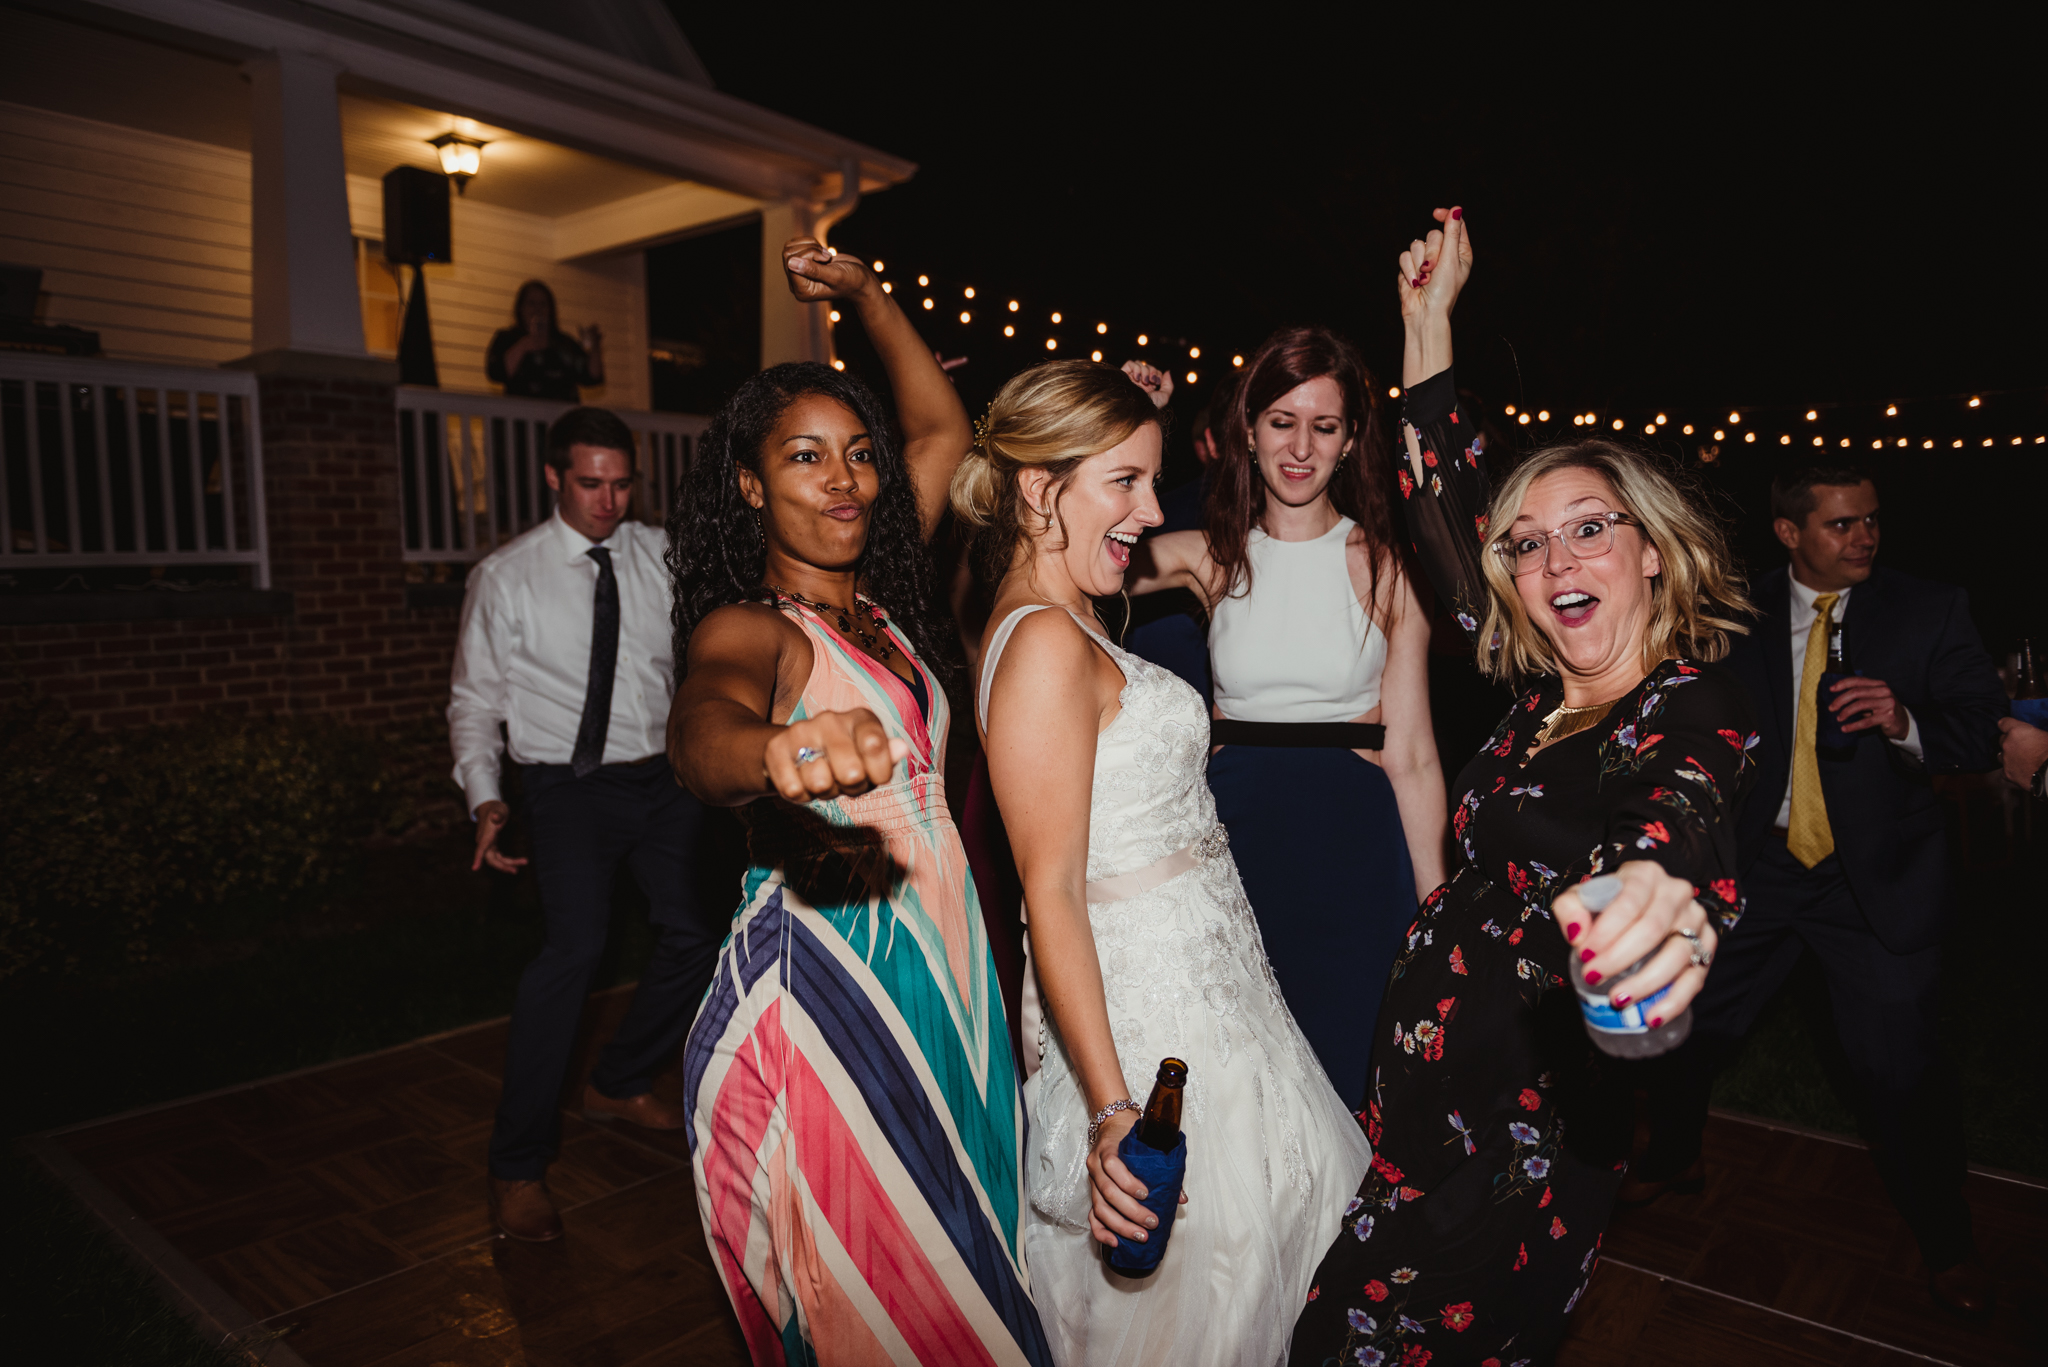 wedding-guests-dancing-at-the-reception.jpg